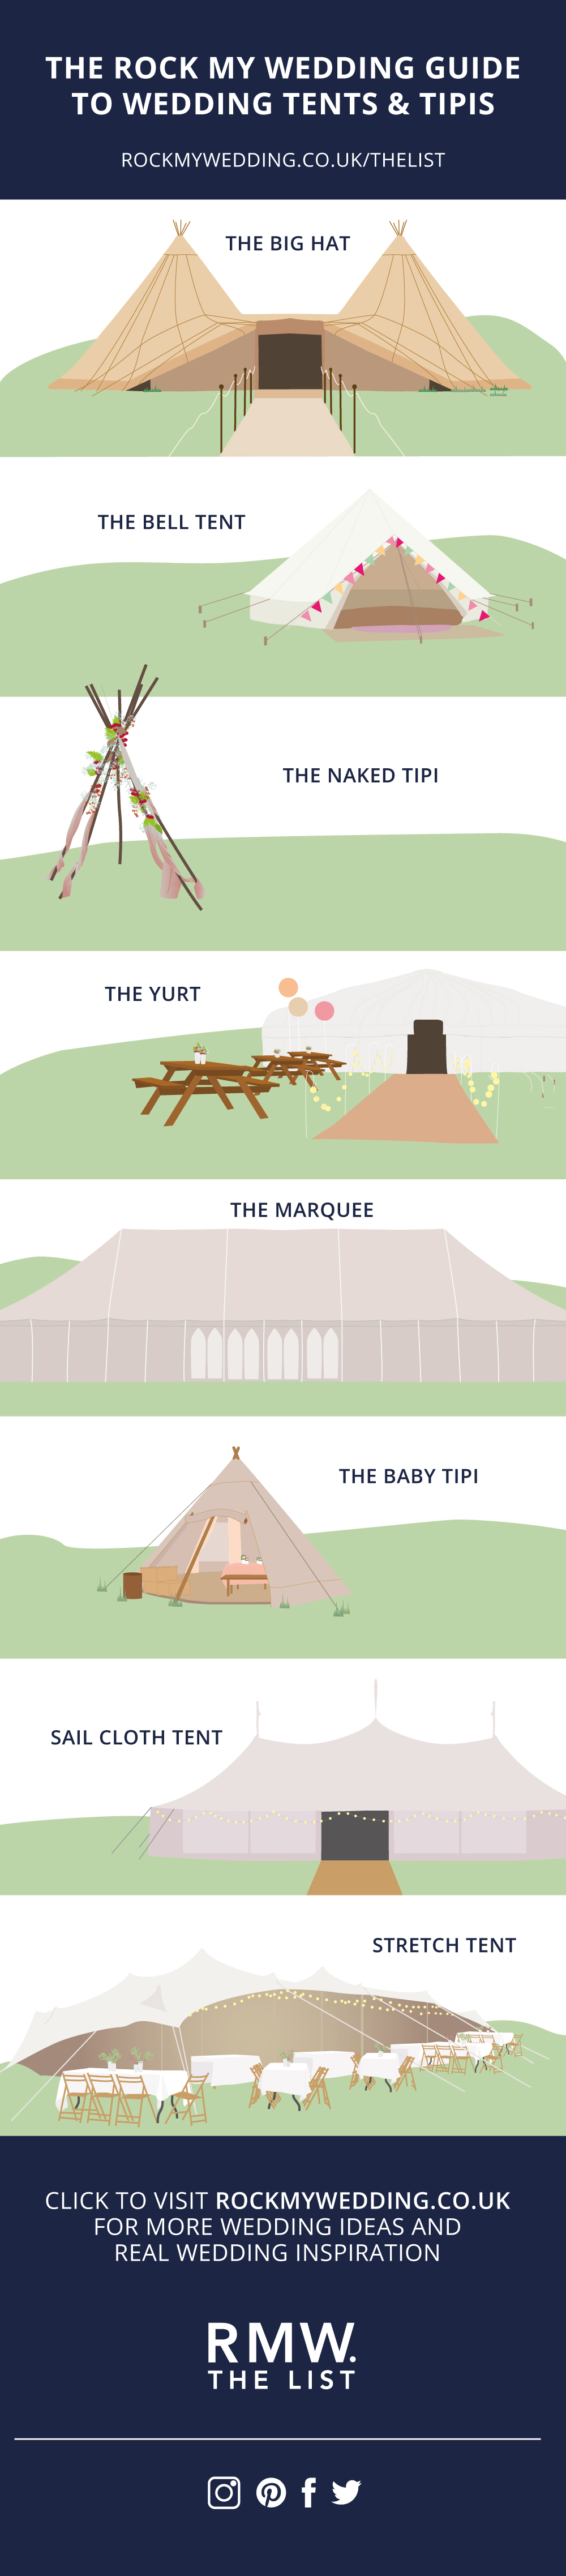 Wedding Tents, Tipis and Marquees from The Love Lust List